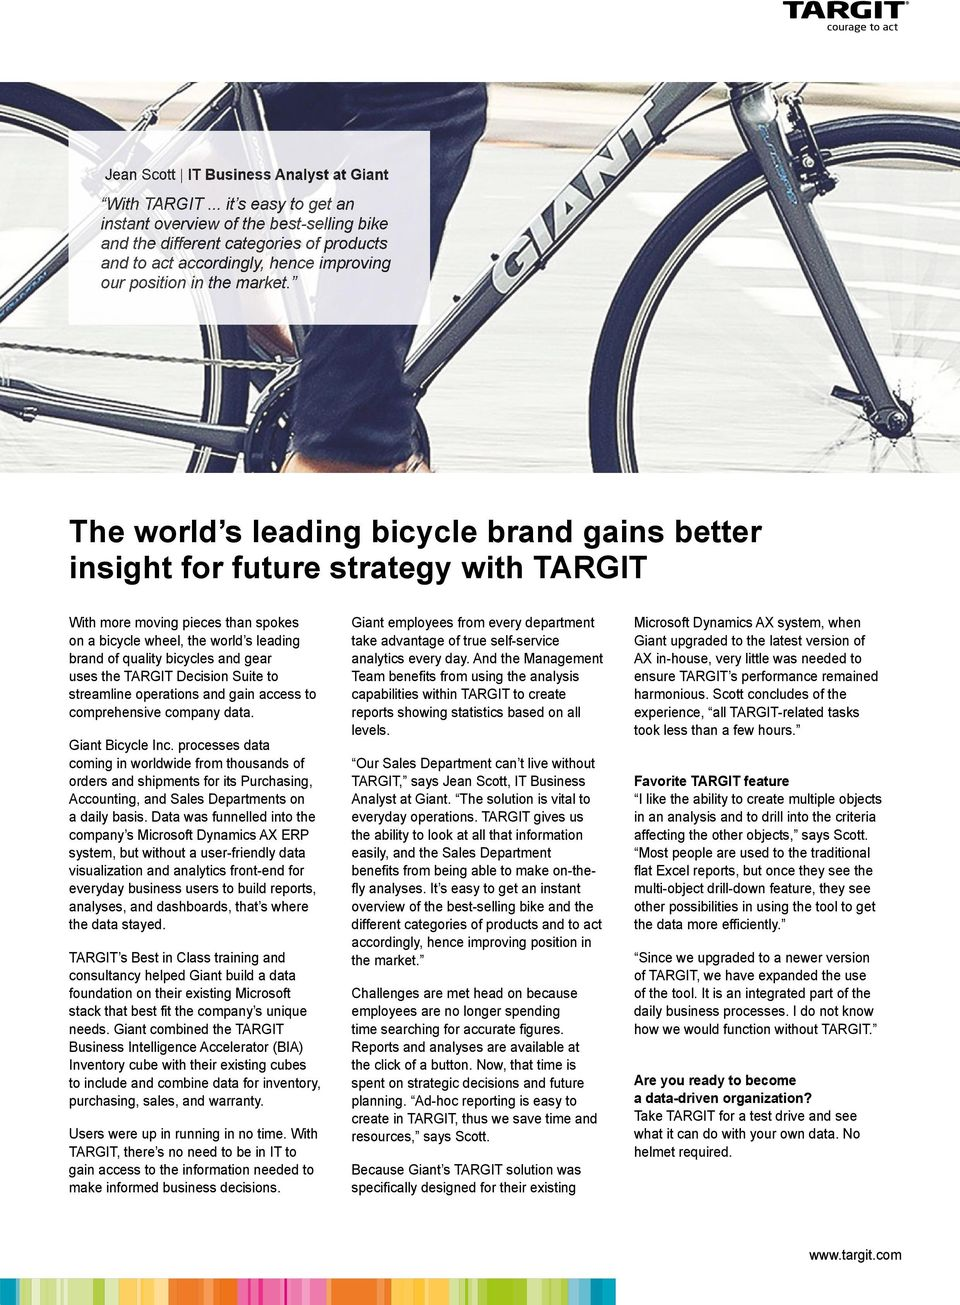 Annonce The world s leading bicycle brand gains better insight for future strategy with TARGIT With more moving pieces than spokes on a bicycle wheel, the world s leading brand of quality bicycles